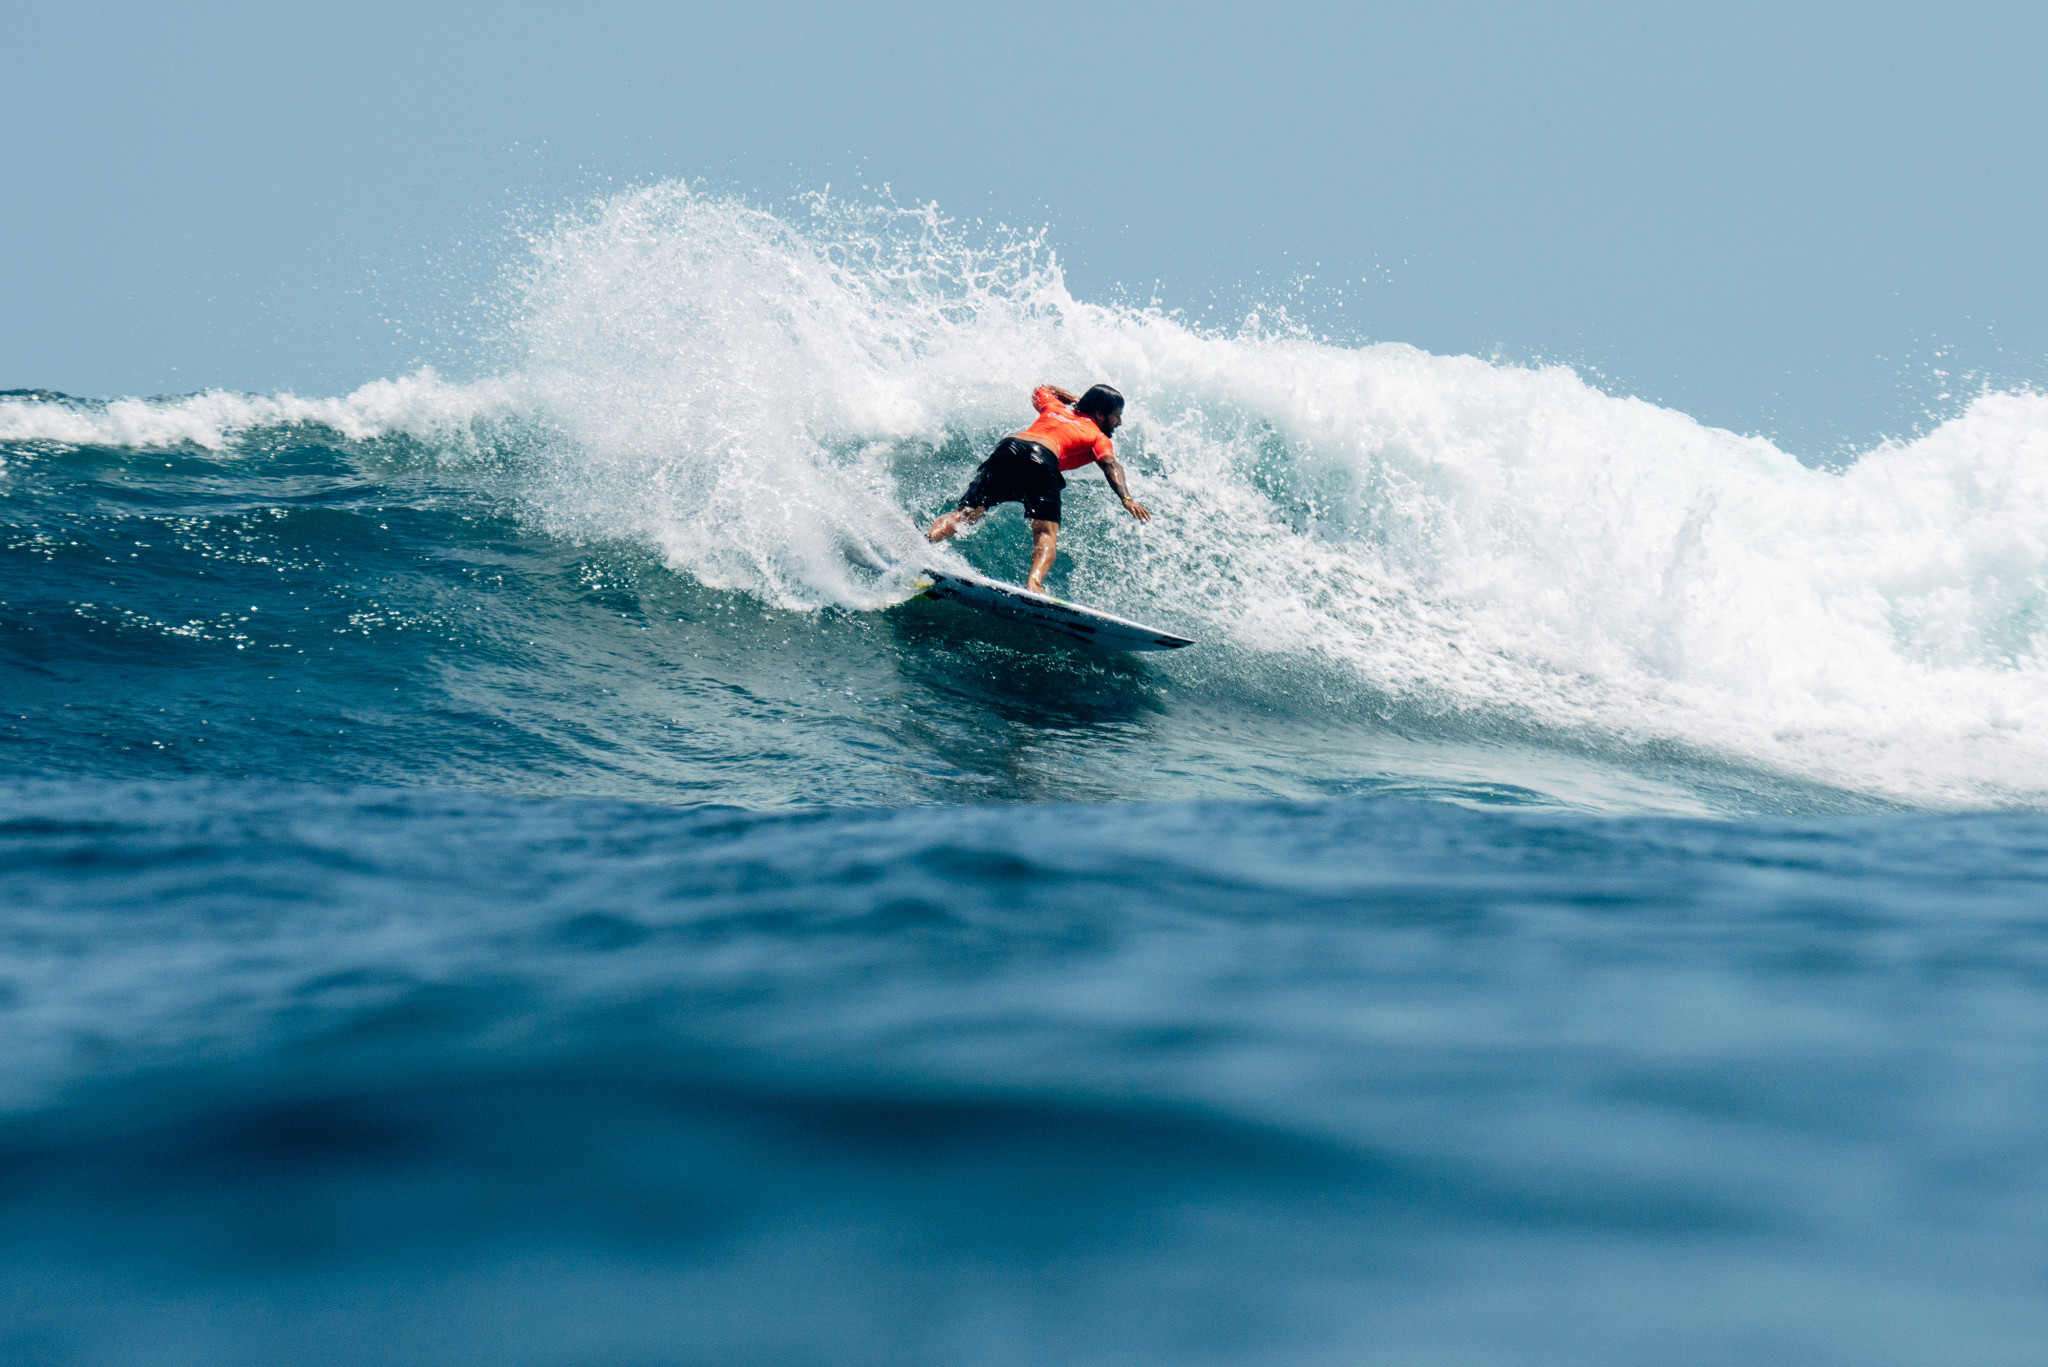 Reigning men's champion Italo Ferreira was among the Brazilian delegation which withdrew from the World Surfing Games  ©ISA/Pablo Jimenez